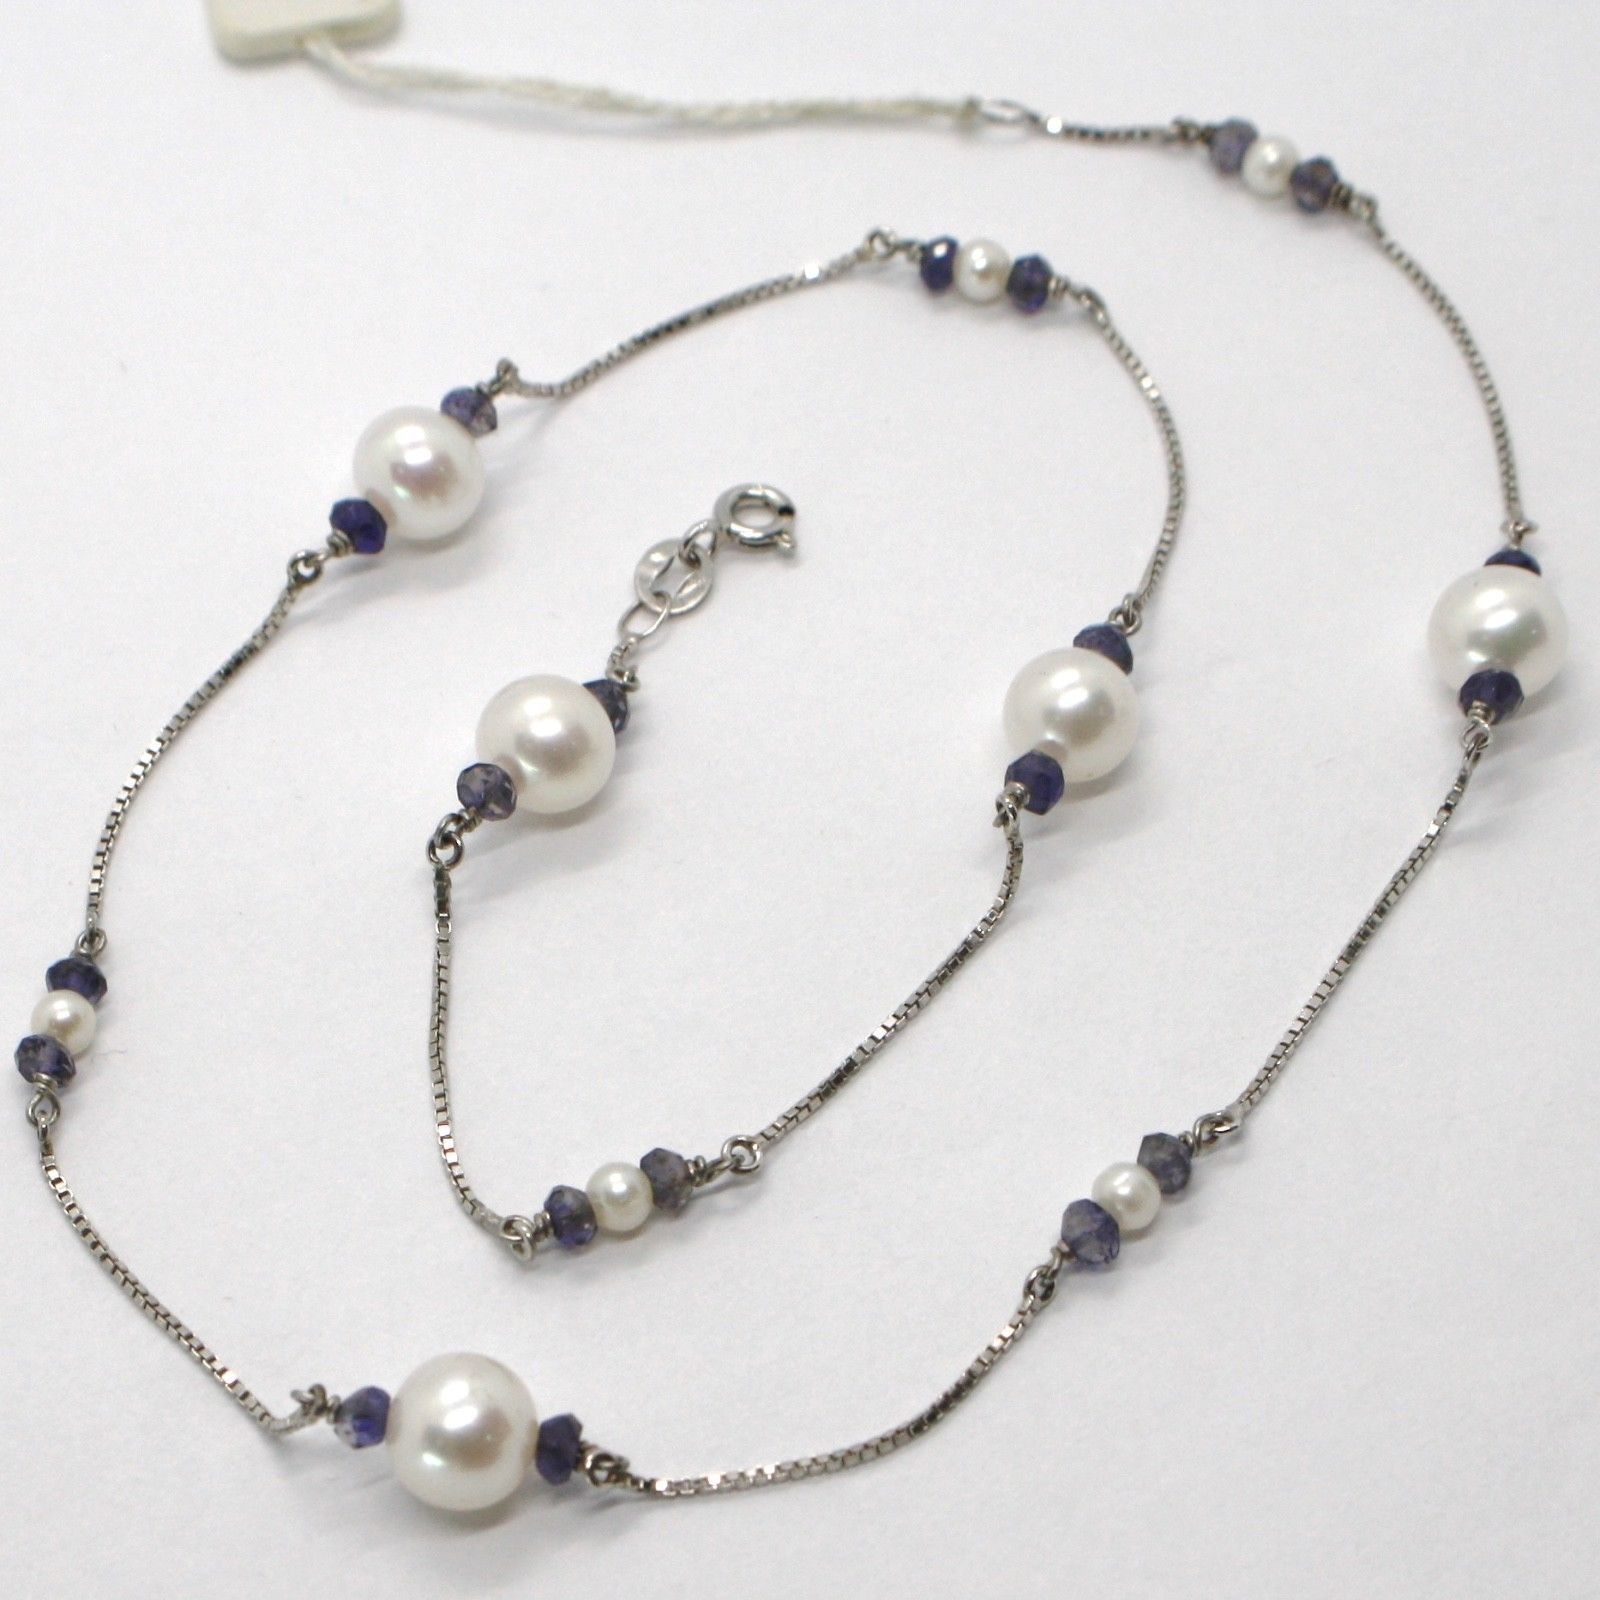 18K WHITE GOLD NECKLACE VENETIAN CHAIN ALTERNATE FACETED BLUE IOLITE AND PEARL